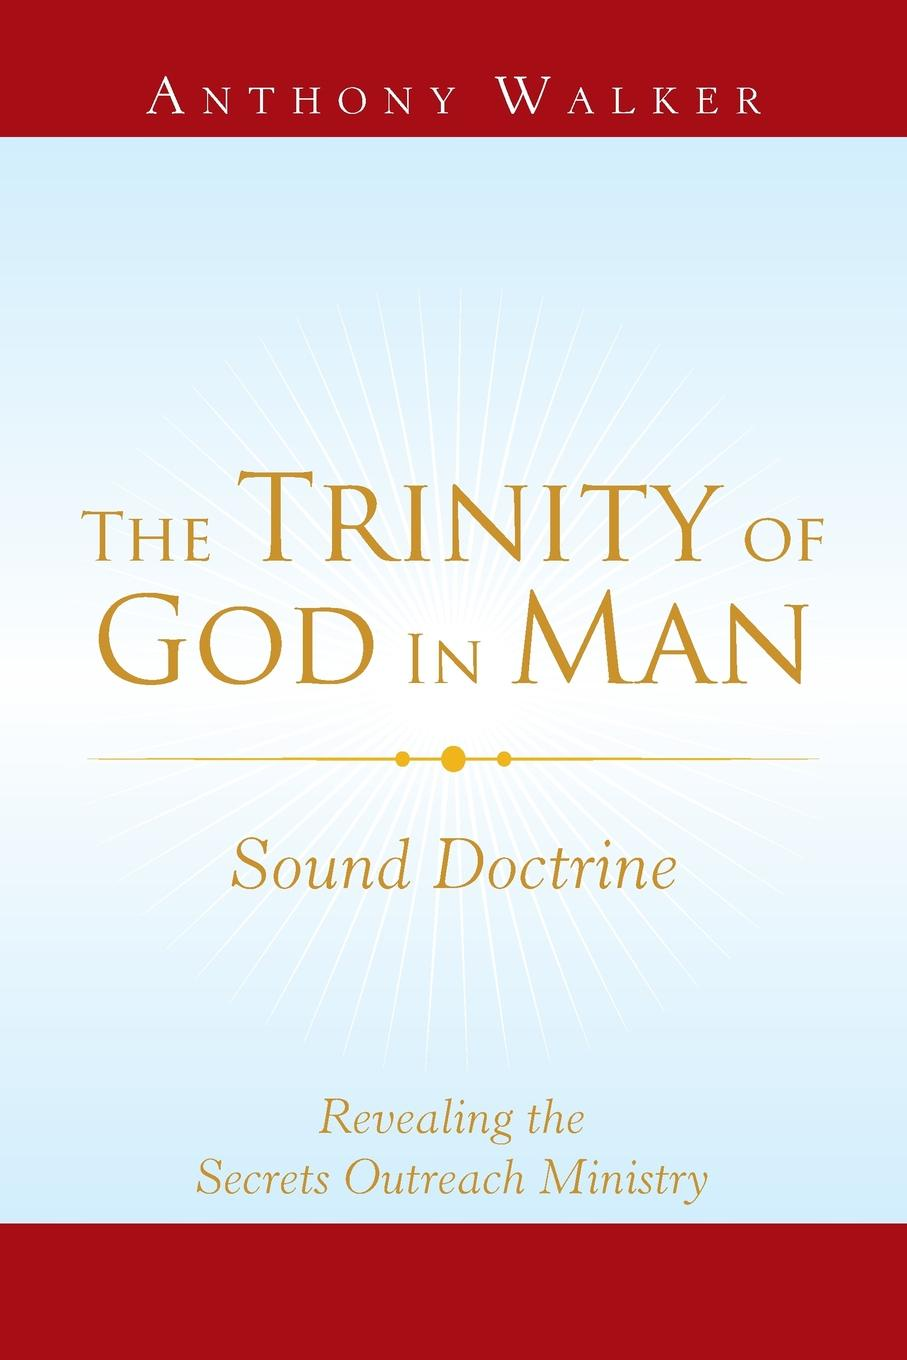 купить Anthony Walker The Trinity of God in Man. Sound Doctrine по цене 2002 рублей